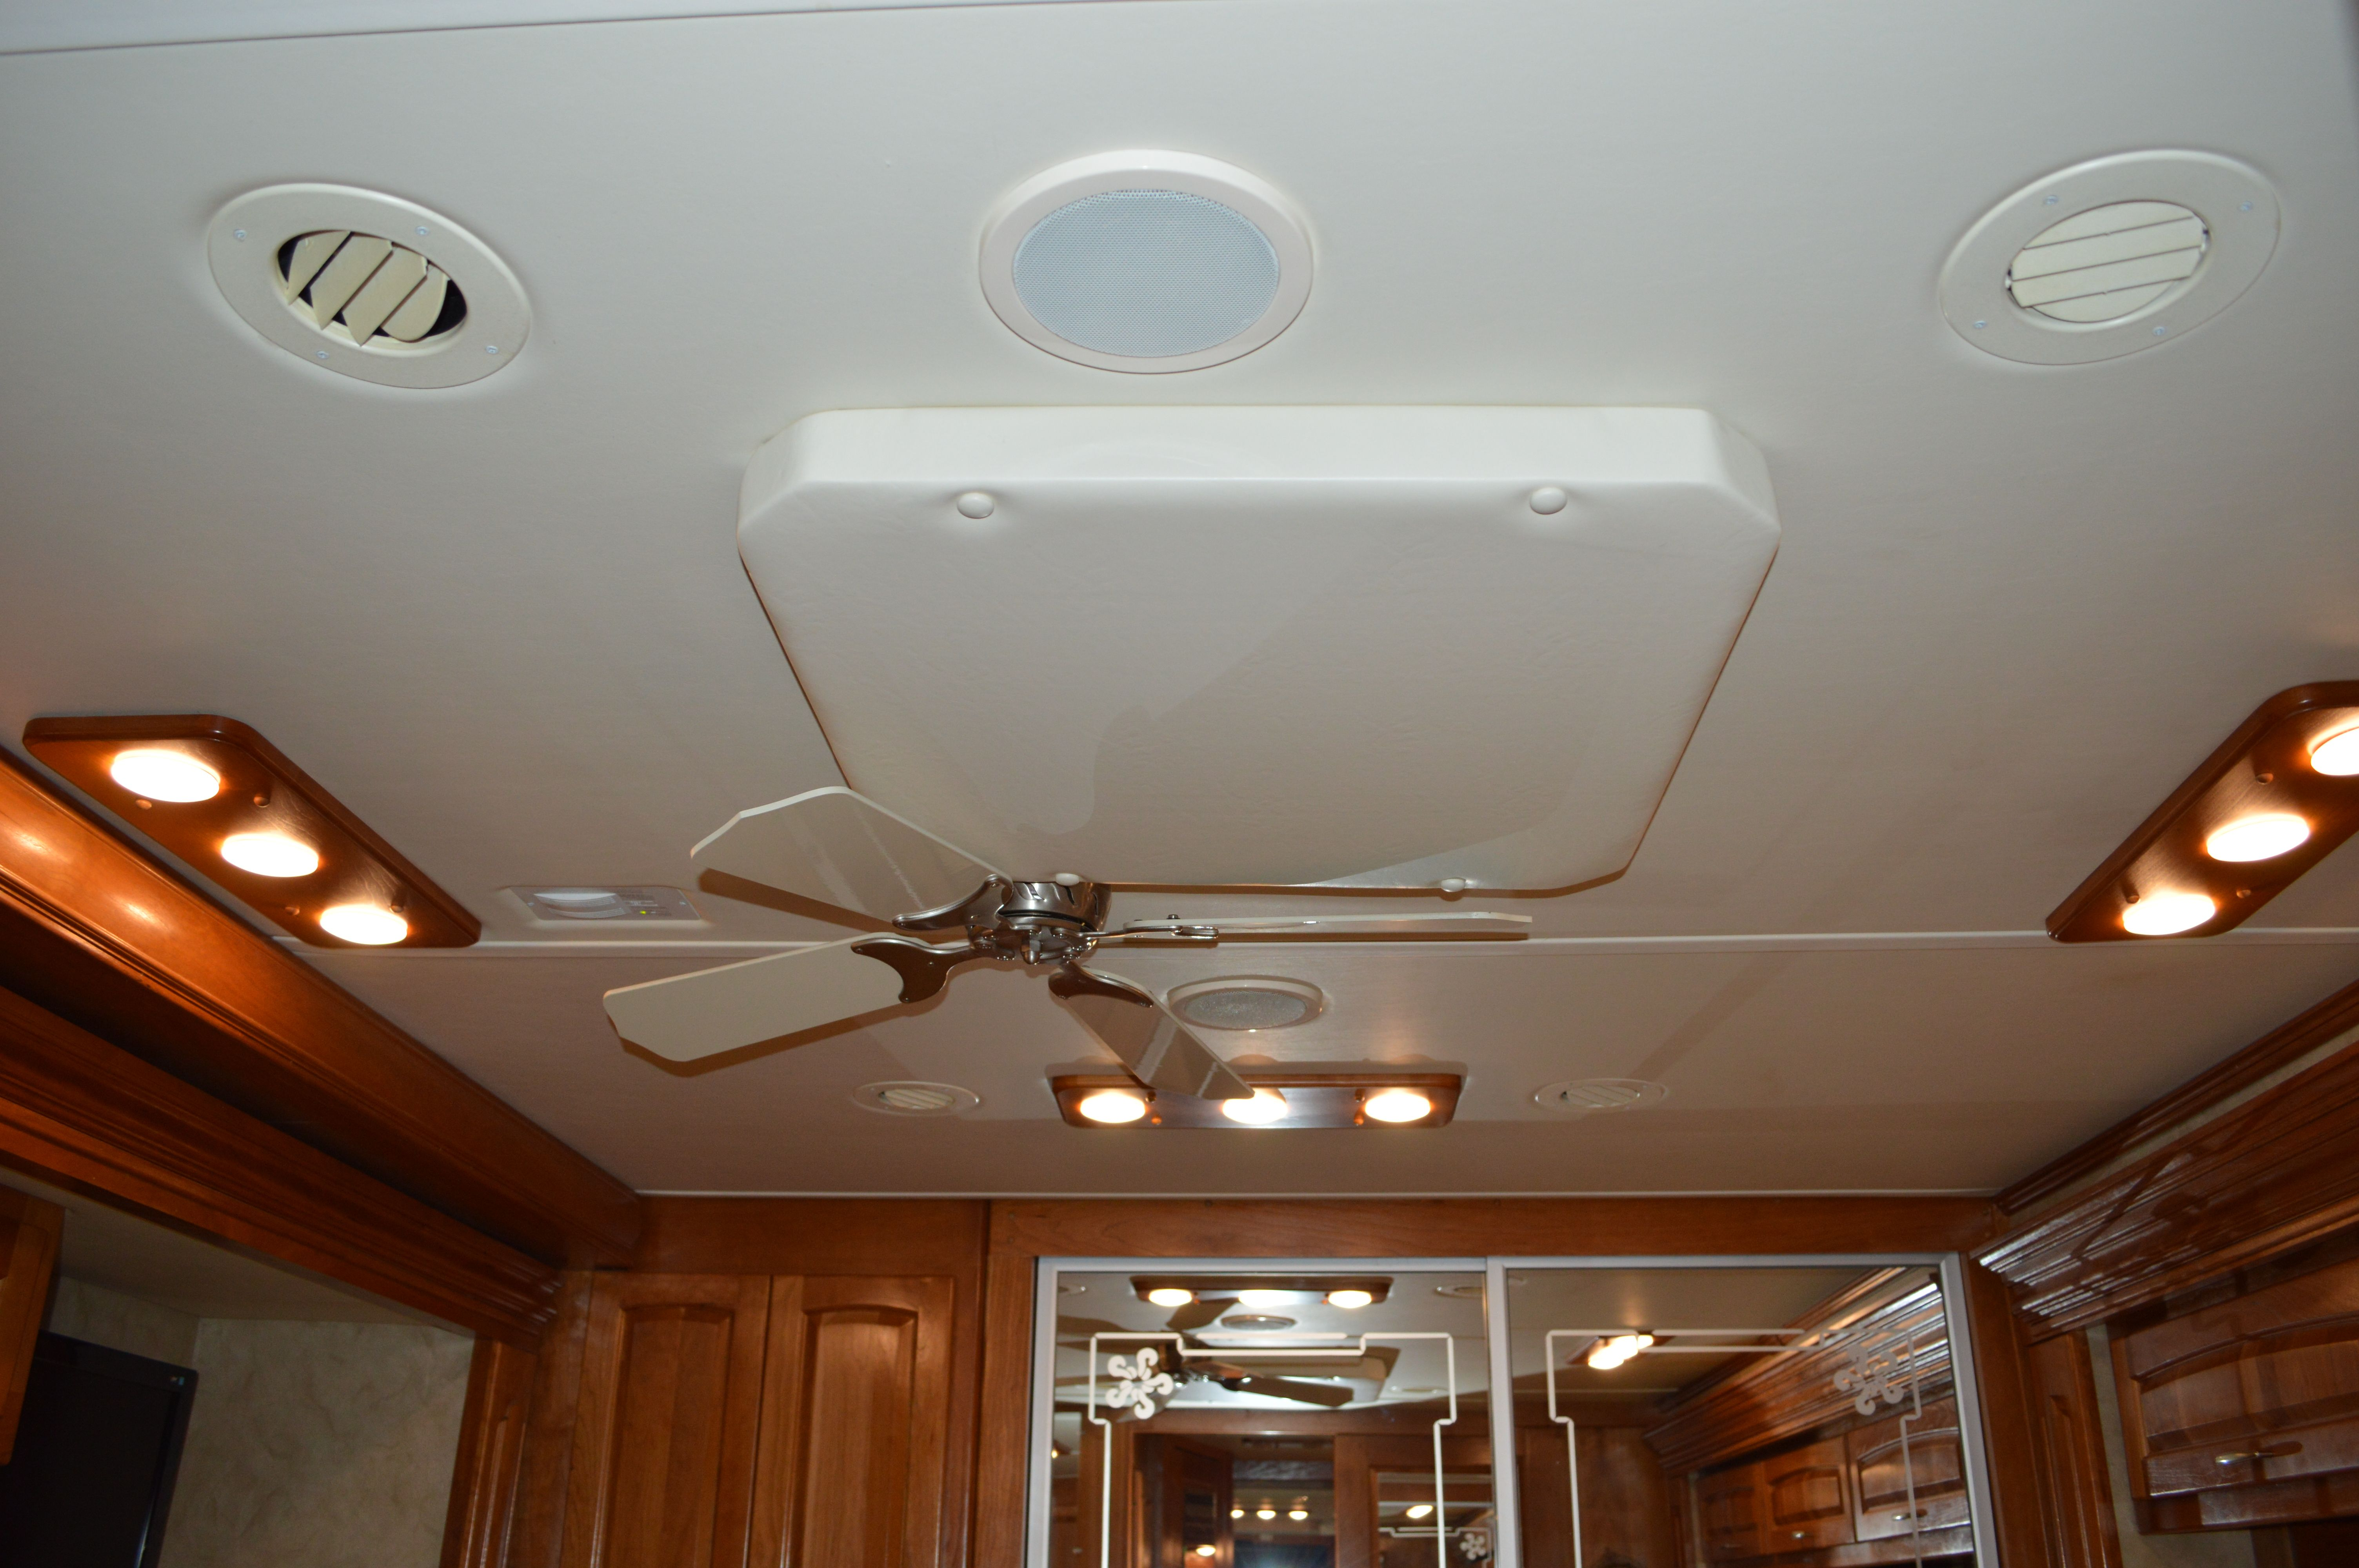 Custom AC cover with LED light boards | Custom RV Ceiling Upgrades on motorhome flooring, transport ceiling designs, kitchen ceiling designs, motorhome interior design, classic ceiling designs, commercial ceiling designs, motorhome murals, motorcoach ceiling designs, motorhome furniture, hotel ceiling designs, office ceiling designs, motorhome bathroom,